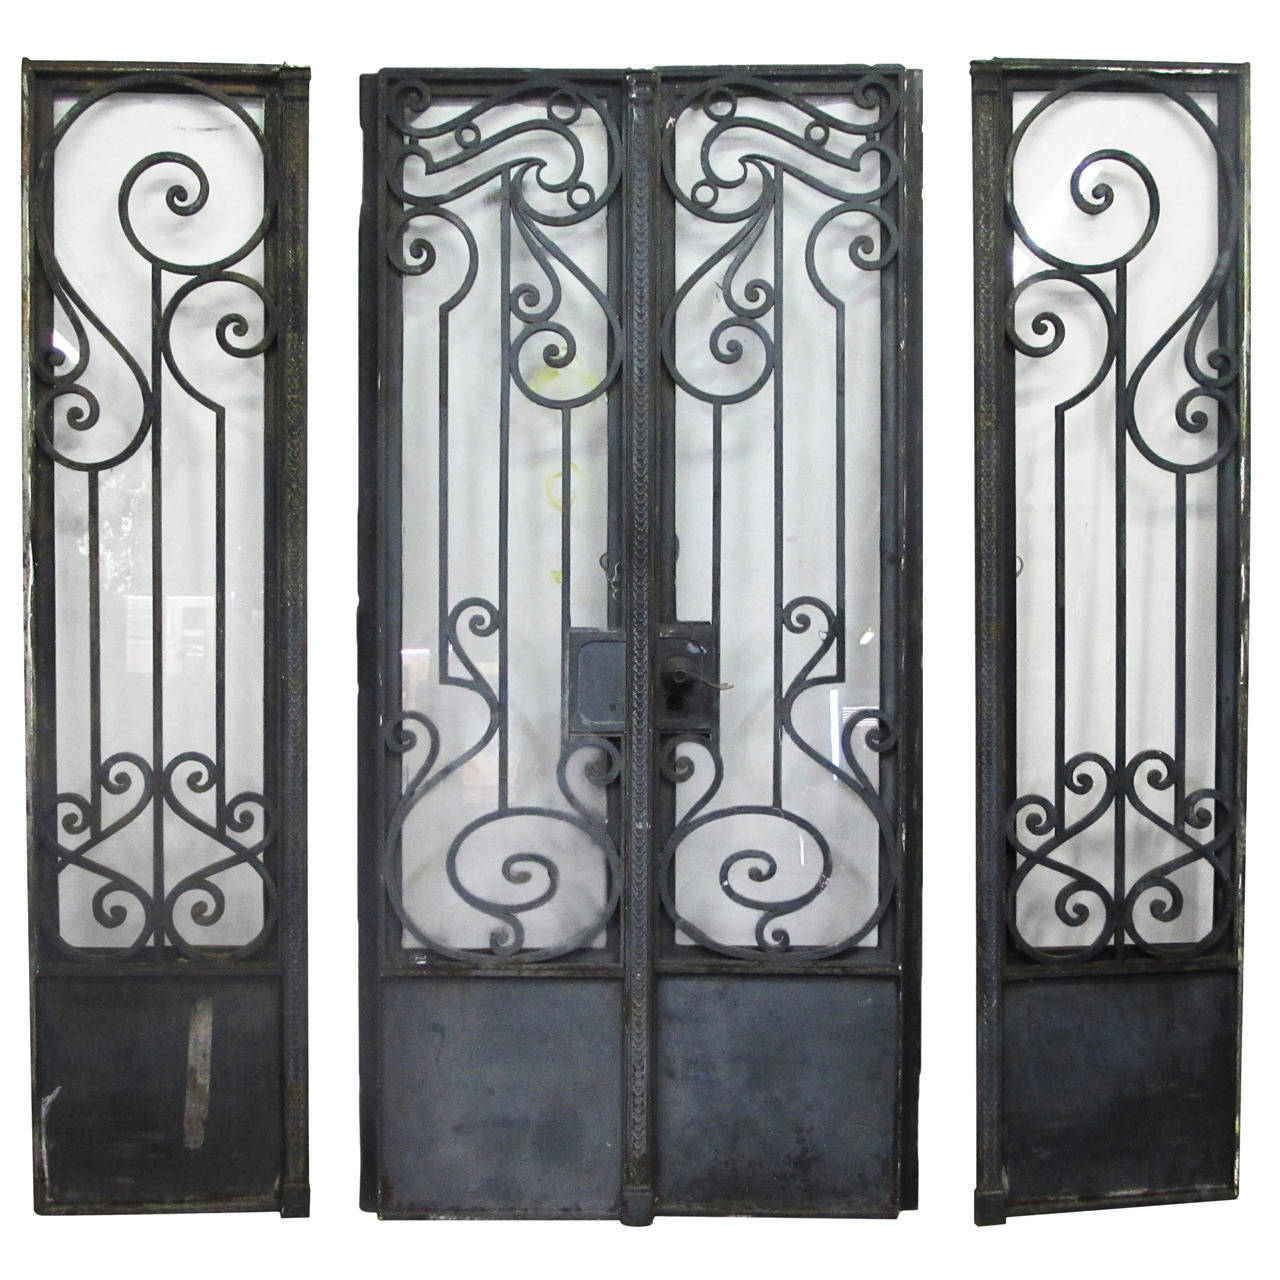 1280 #6D715A  Nouveau Brownstone Iron Door Set With Matching Sidelights At 1stdibs pic Metal Entry Doors With Sidelights 39211280